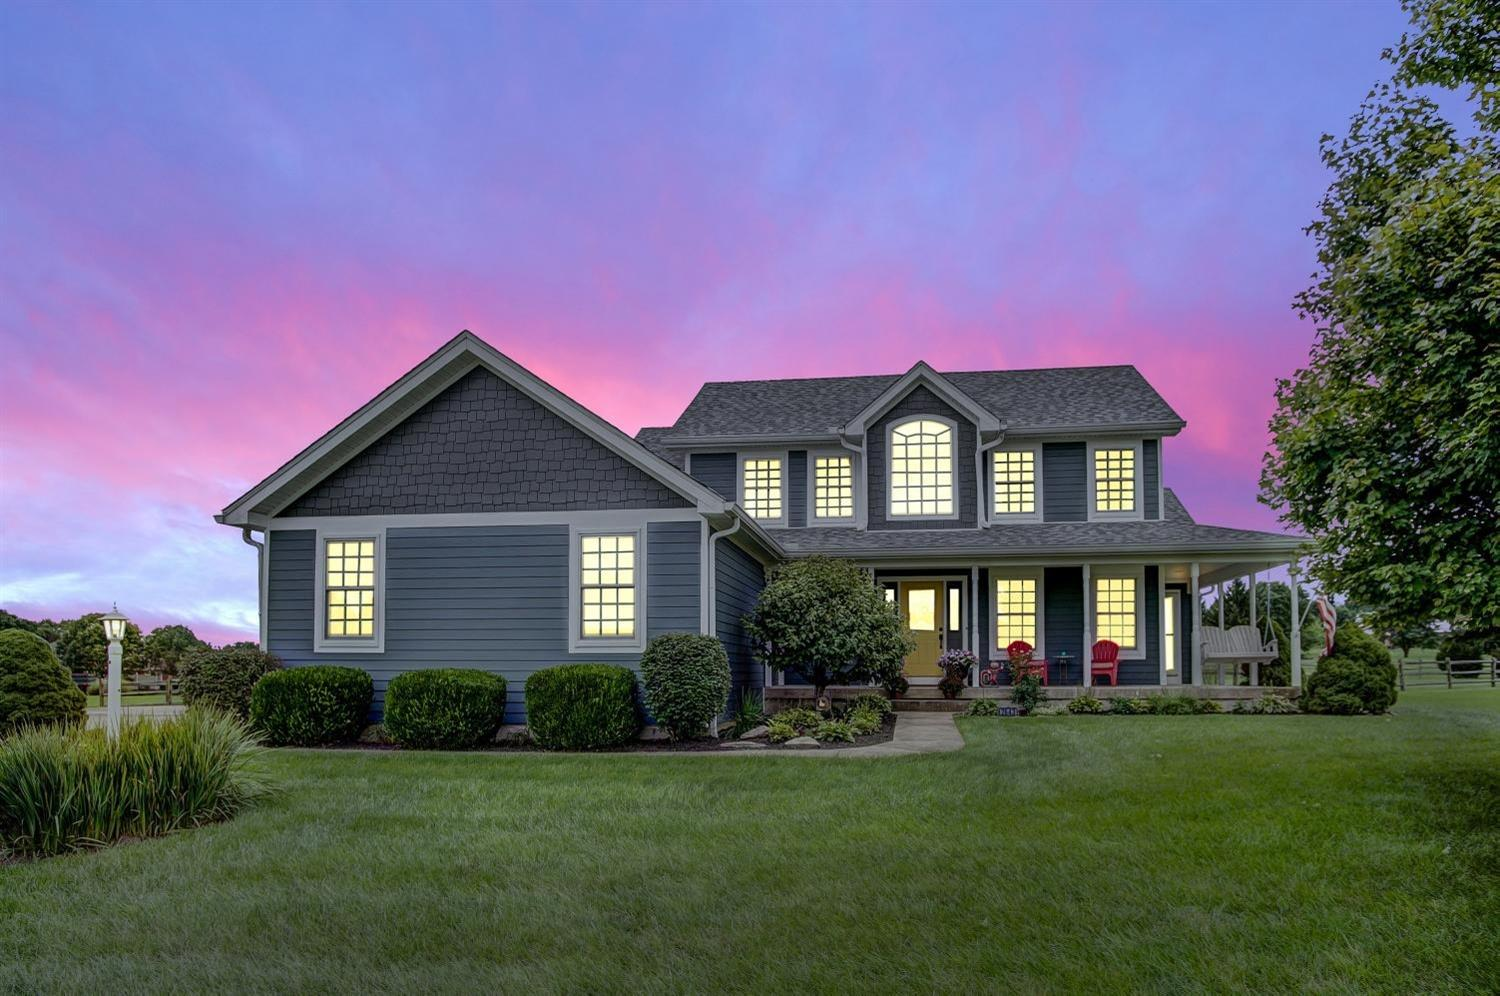 2643 Jade Pointe Ct Clear Creek Twp., OH